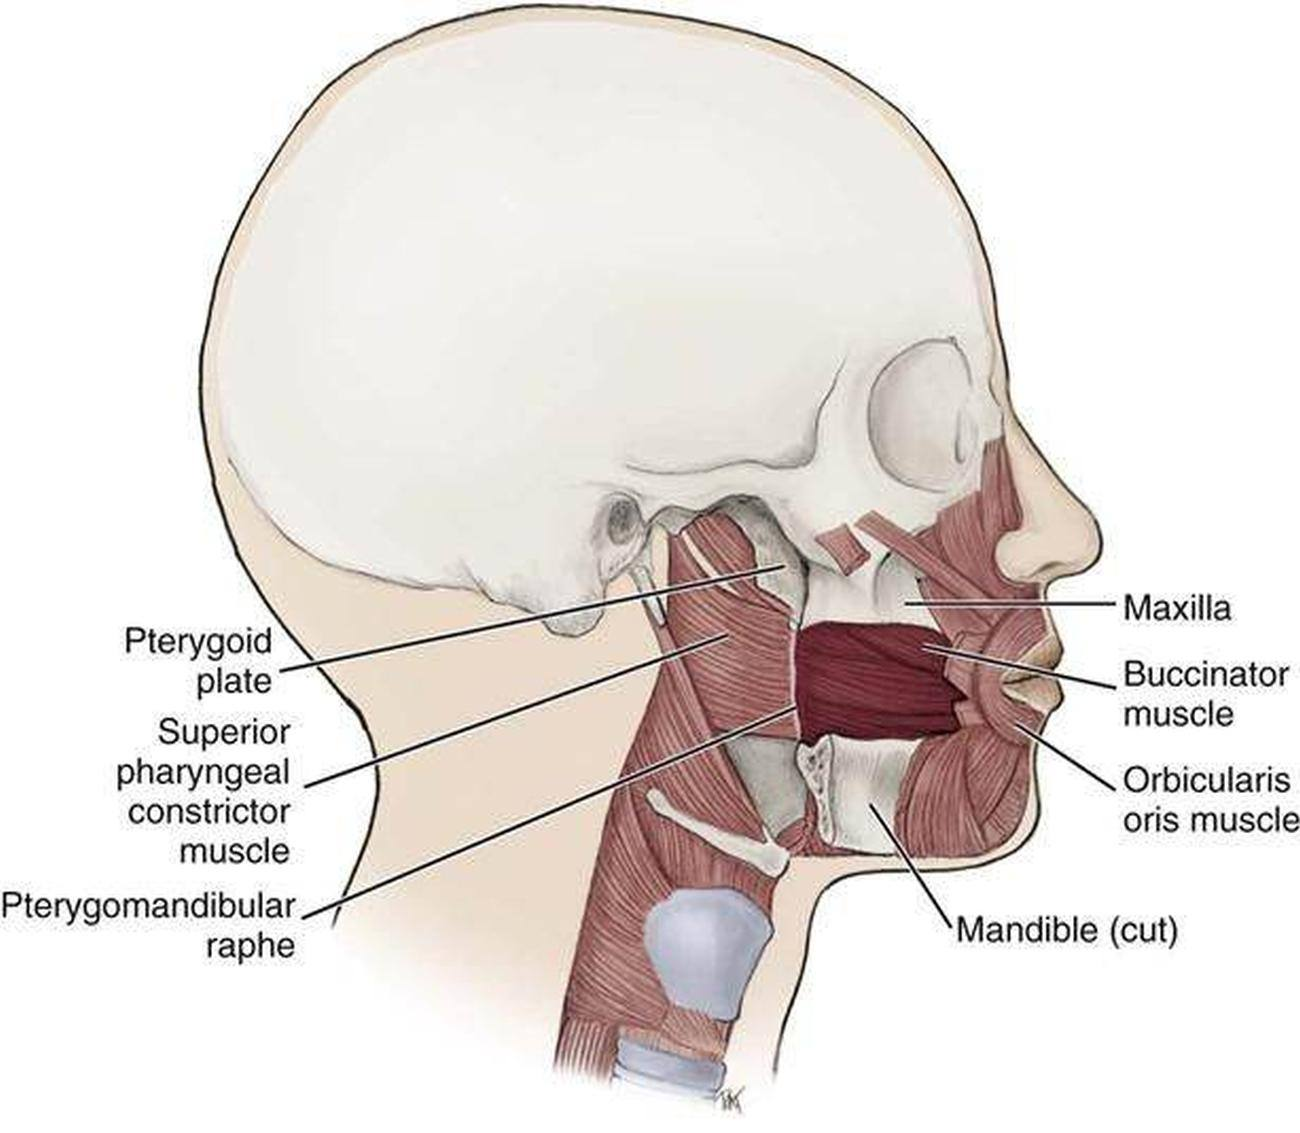 ORIGIN Anterior surface of zygomatic bone INSERTION Modiolus at angle of mouth ACTION Elevates and draws angle of mouth laterally NERVE Buccal branch of facial nerve VII